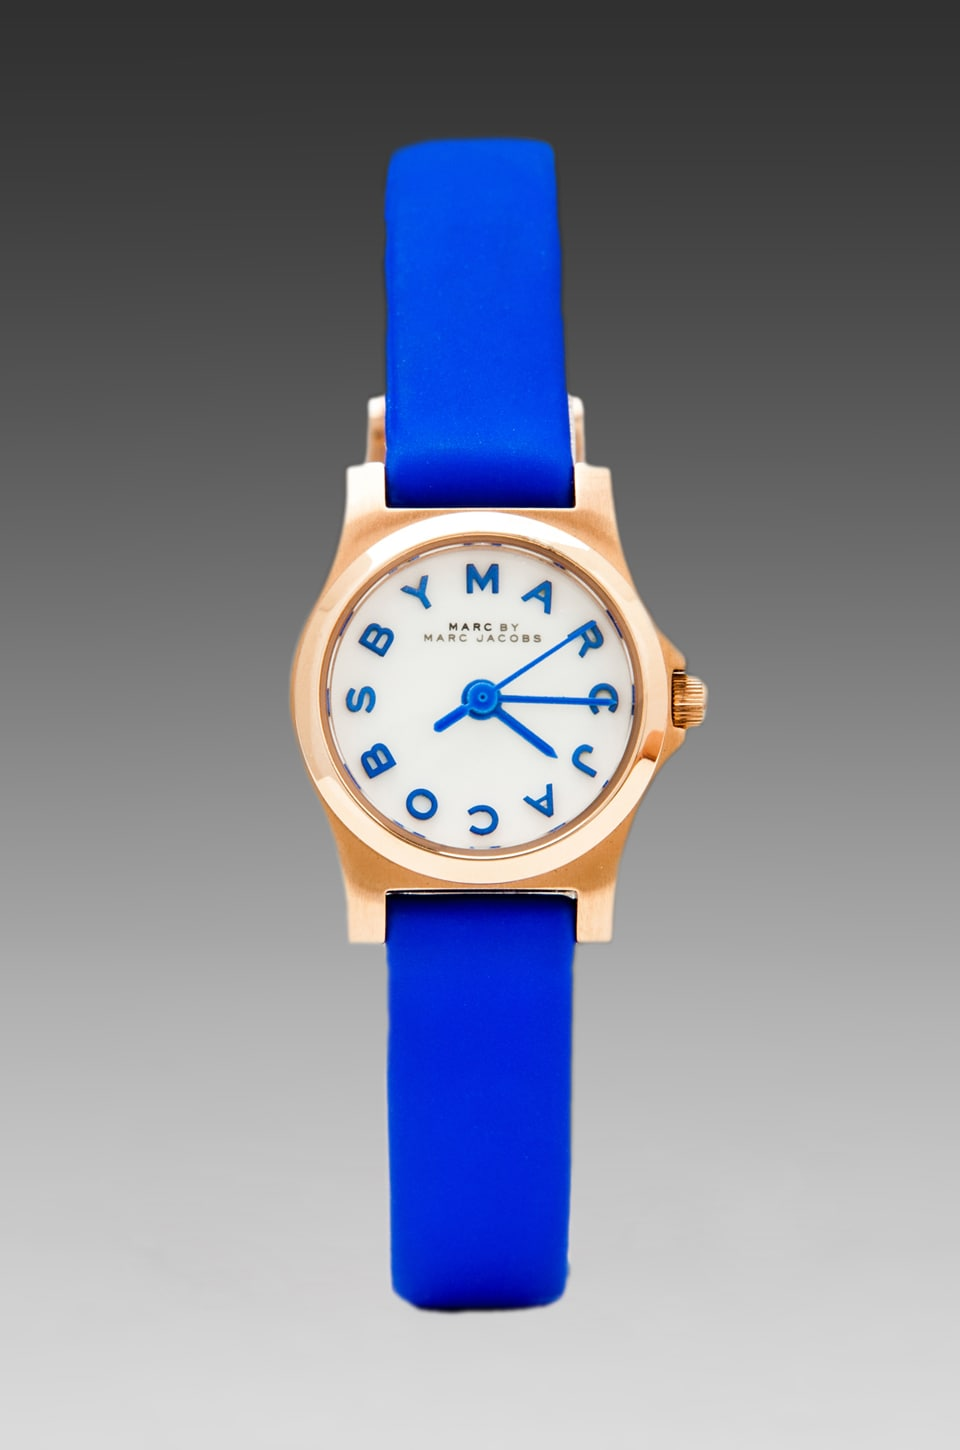 Marc by Marc Jacobs Henry Dinky Watch in Malibu Blue/Rosegold